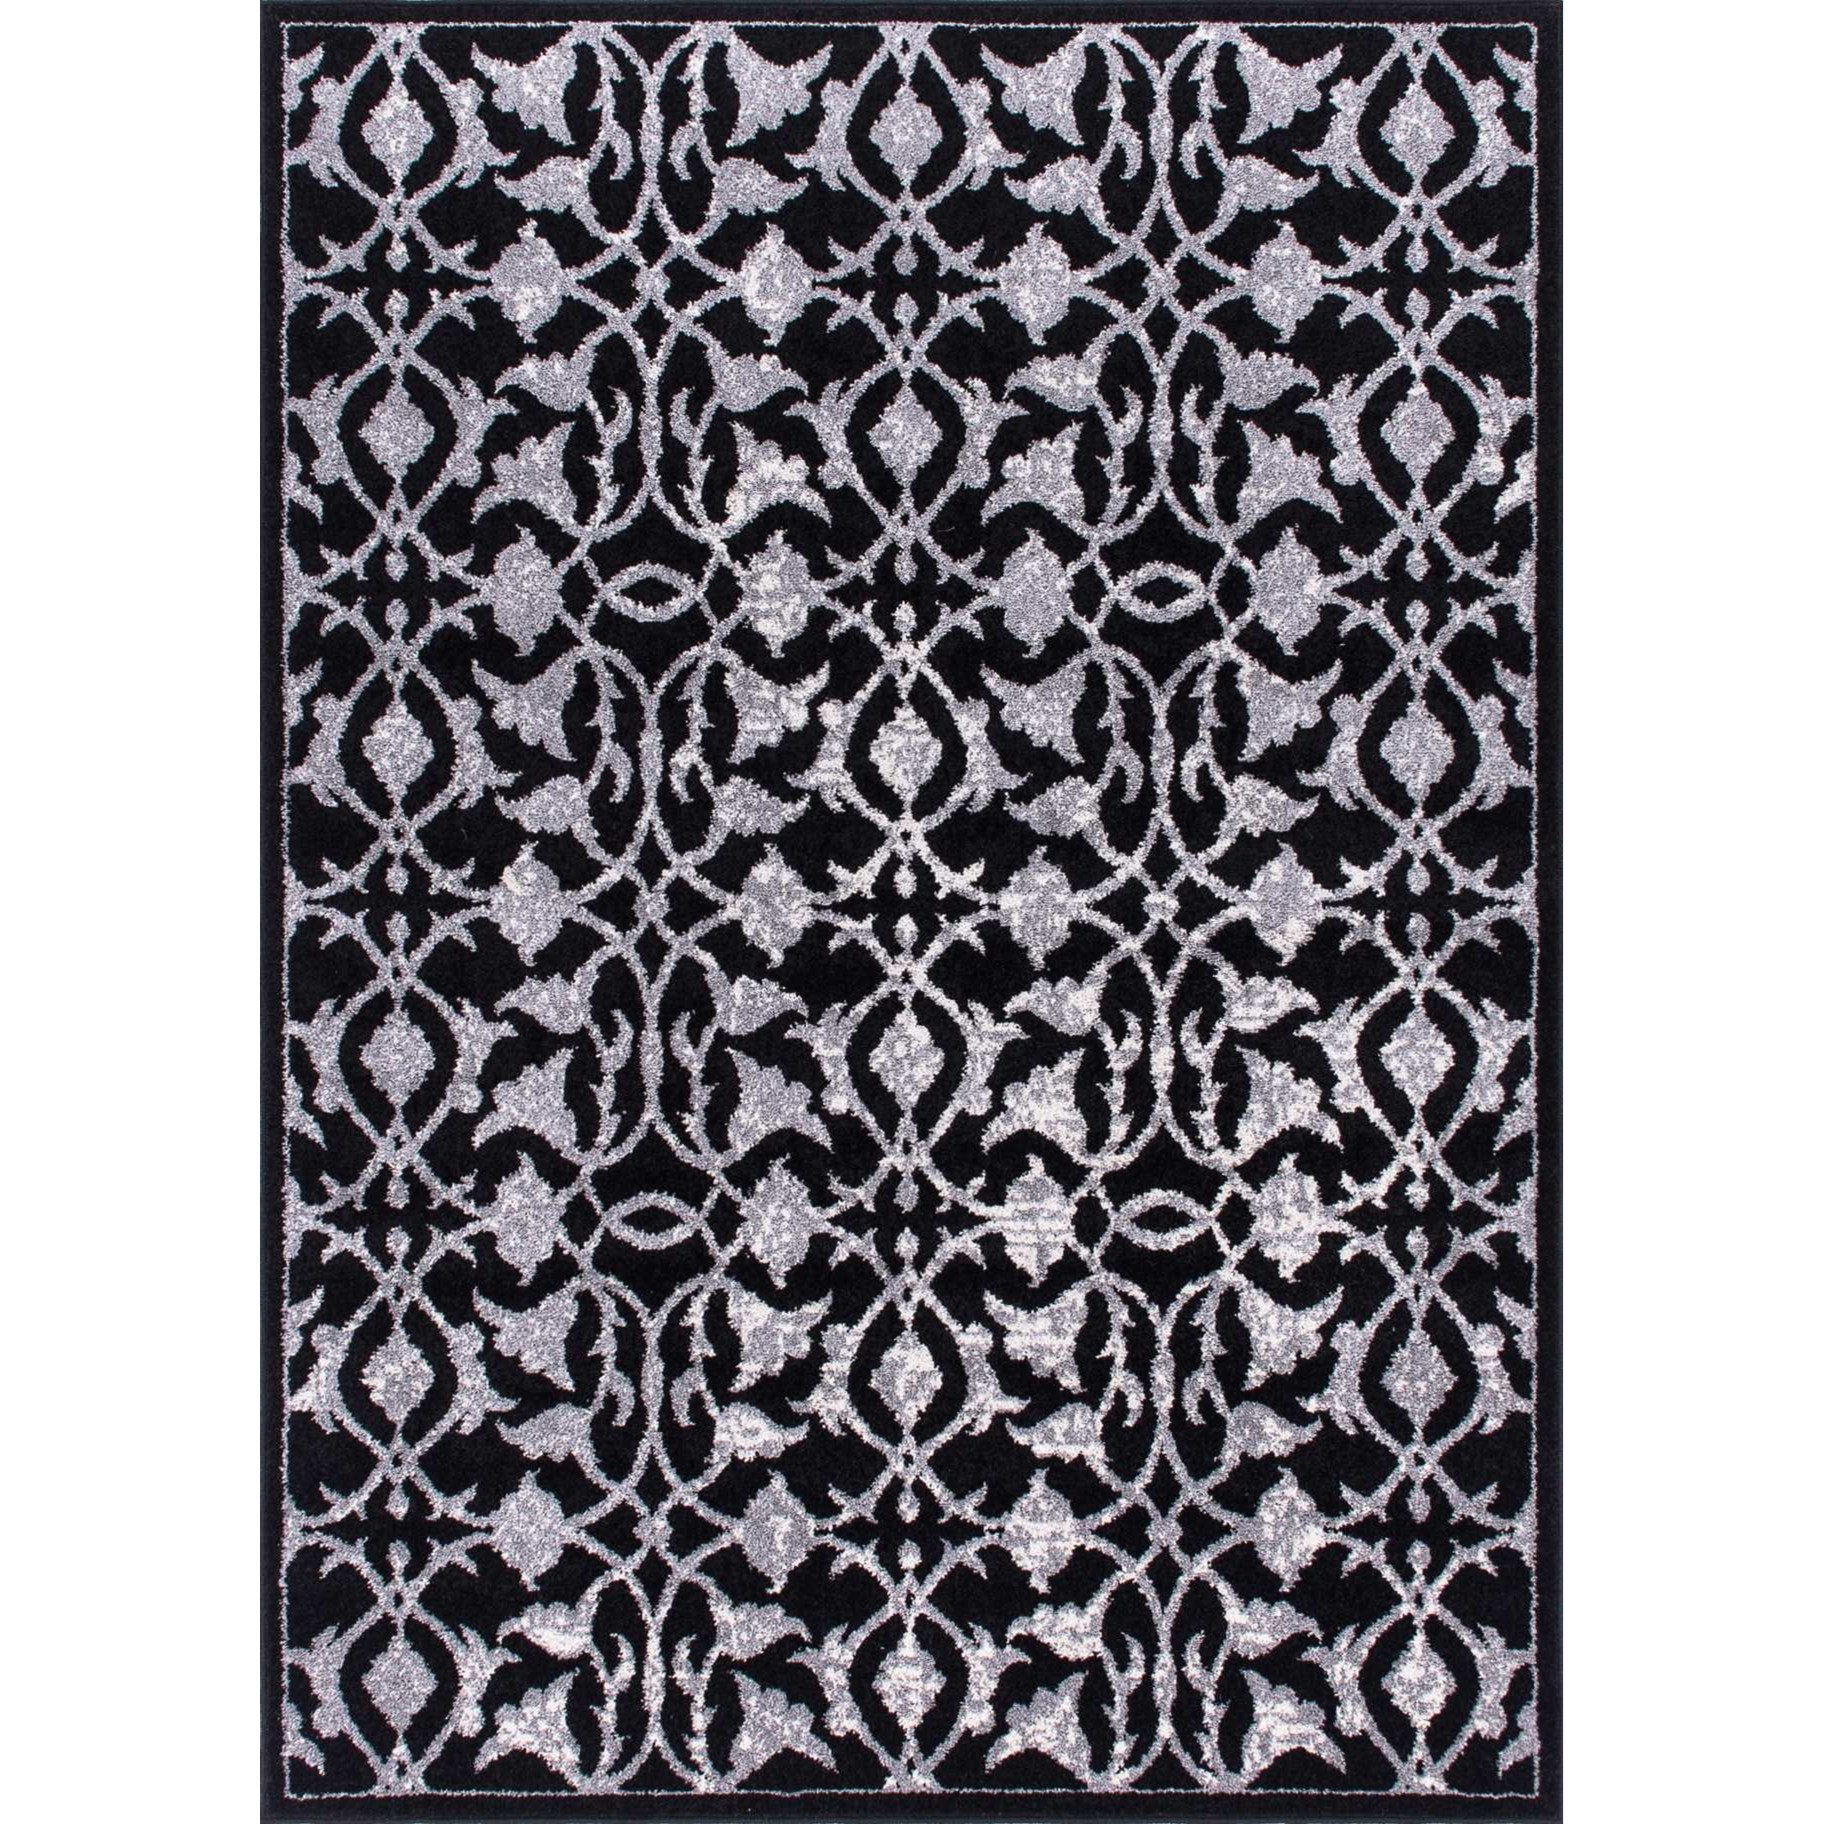 "3'11"" x 5'10"" Black Rectangle Rug"